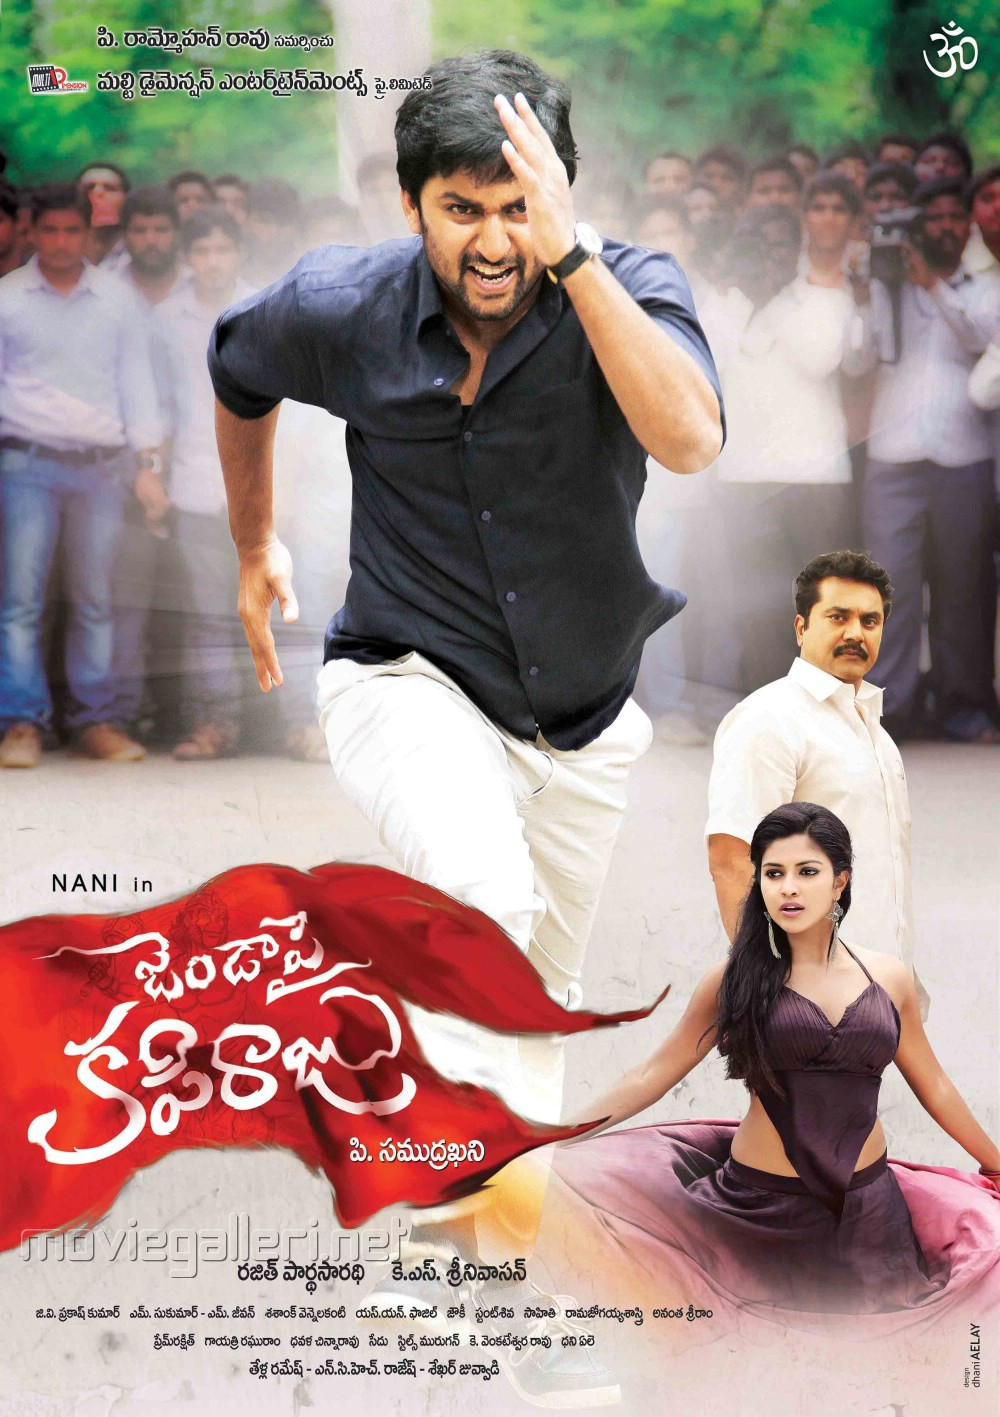 Nani in Janda Pai Kapiraju Movie Posters